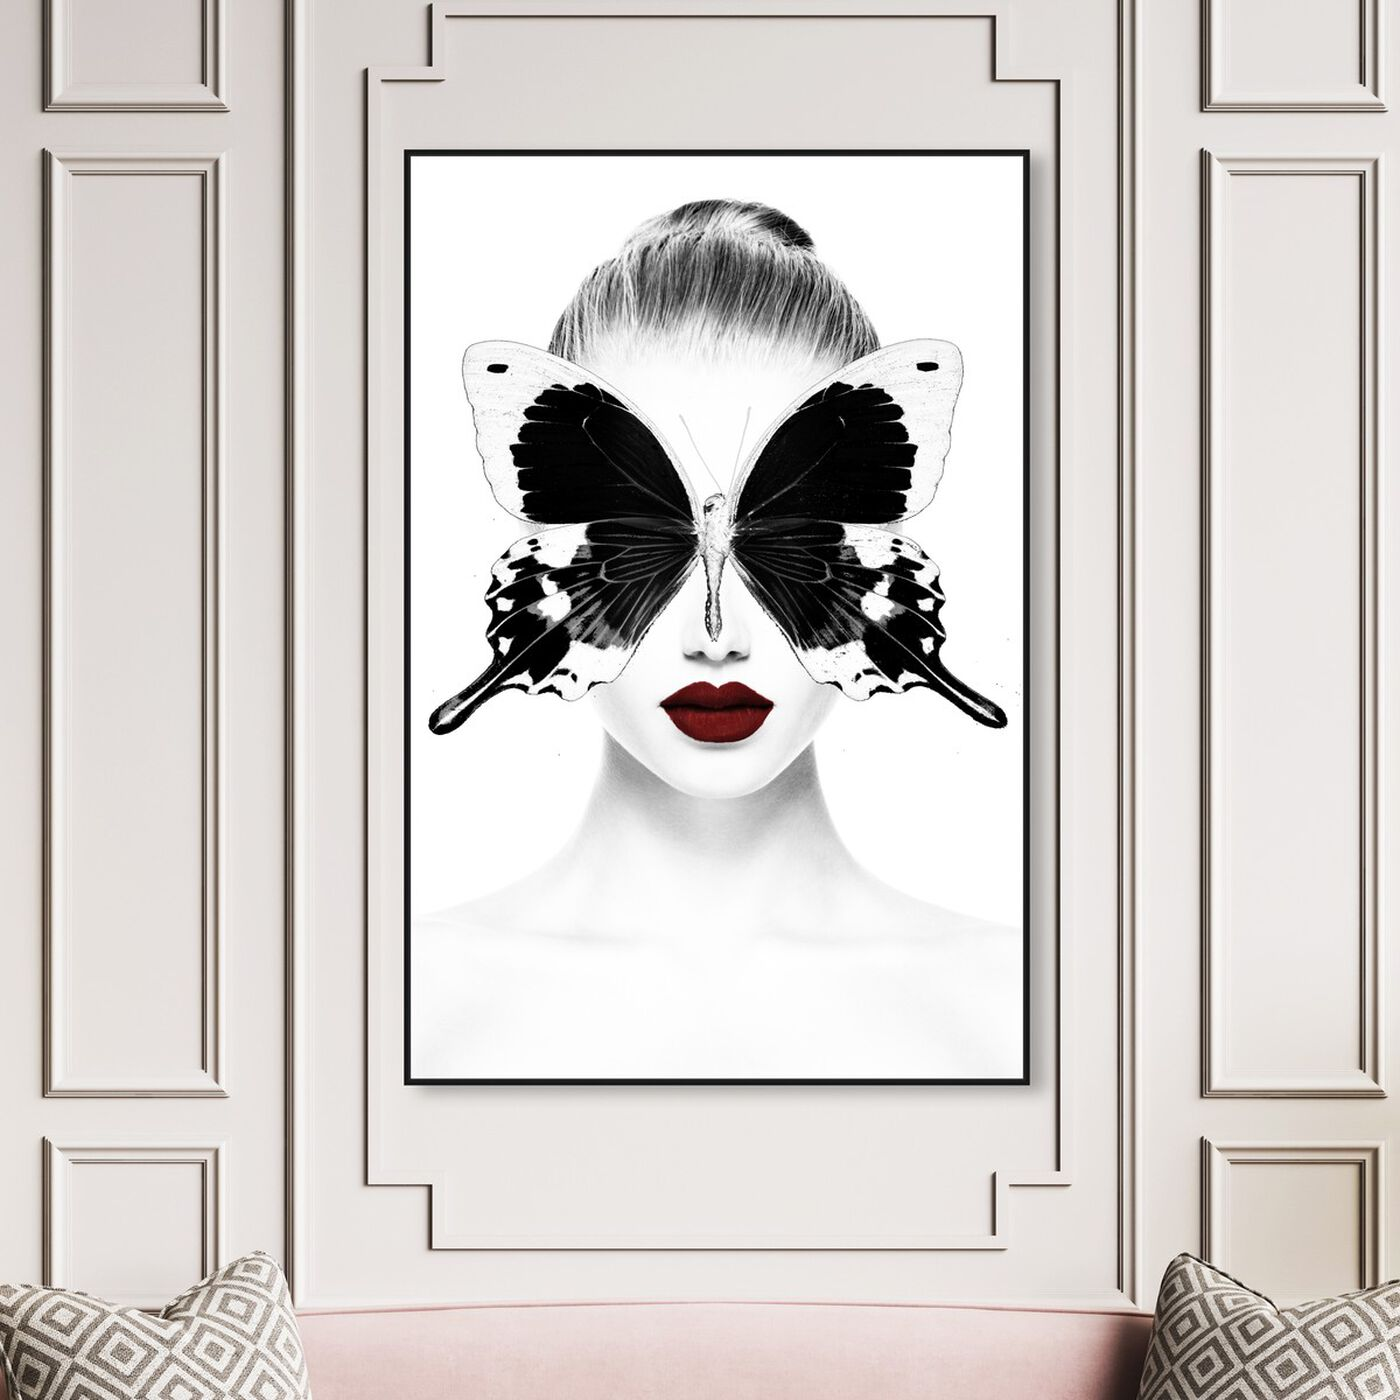 Hanging view of Red Duchess Toujours featuring fashion and glam and portraits art.